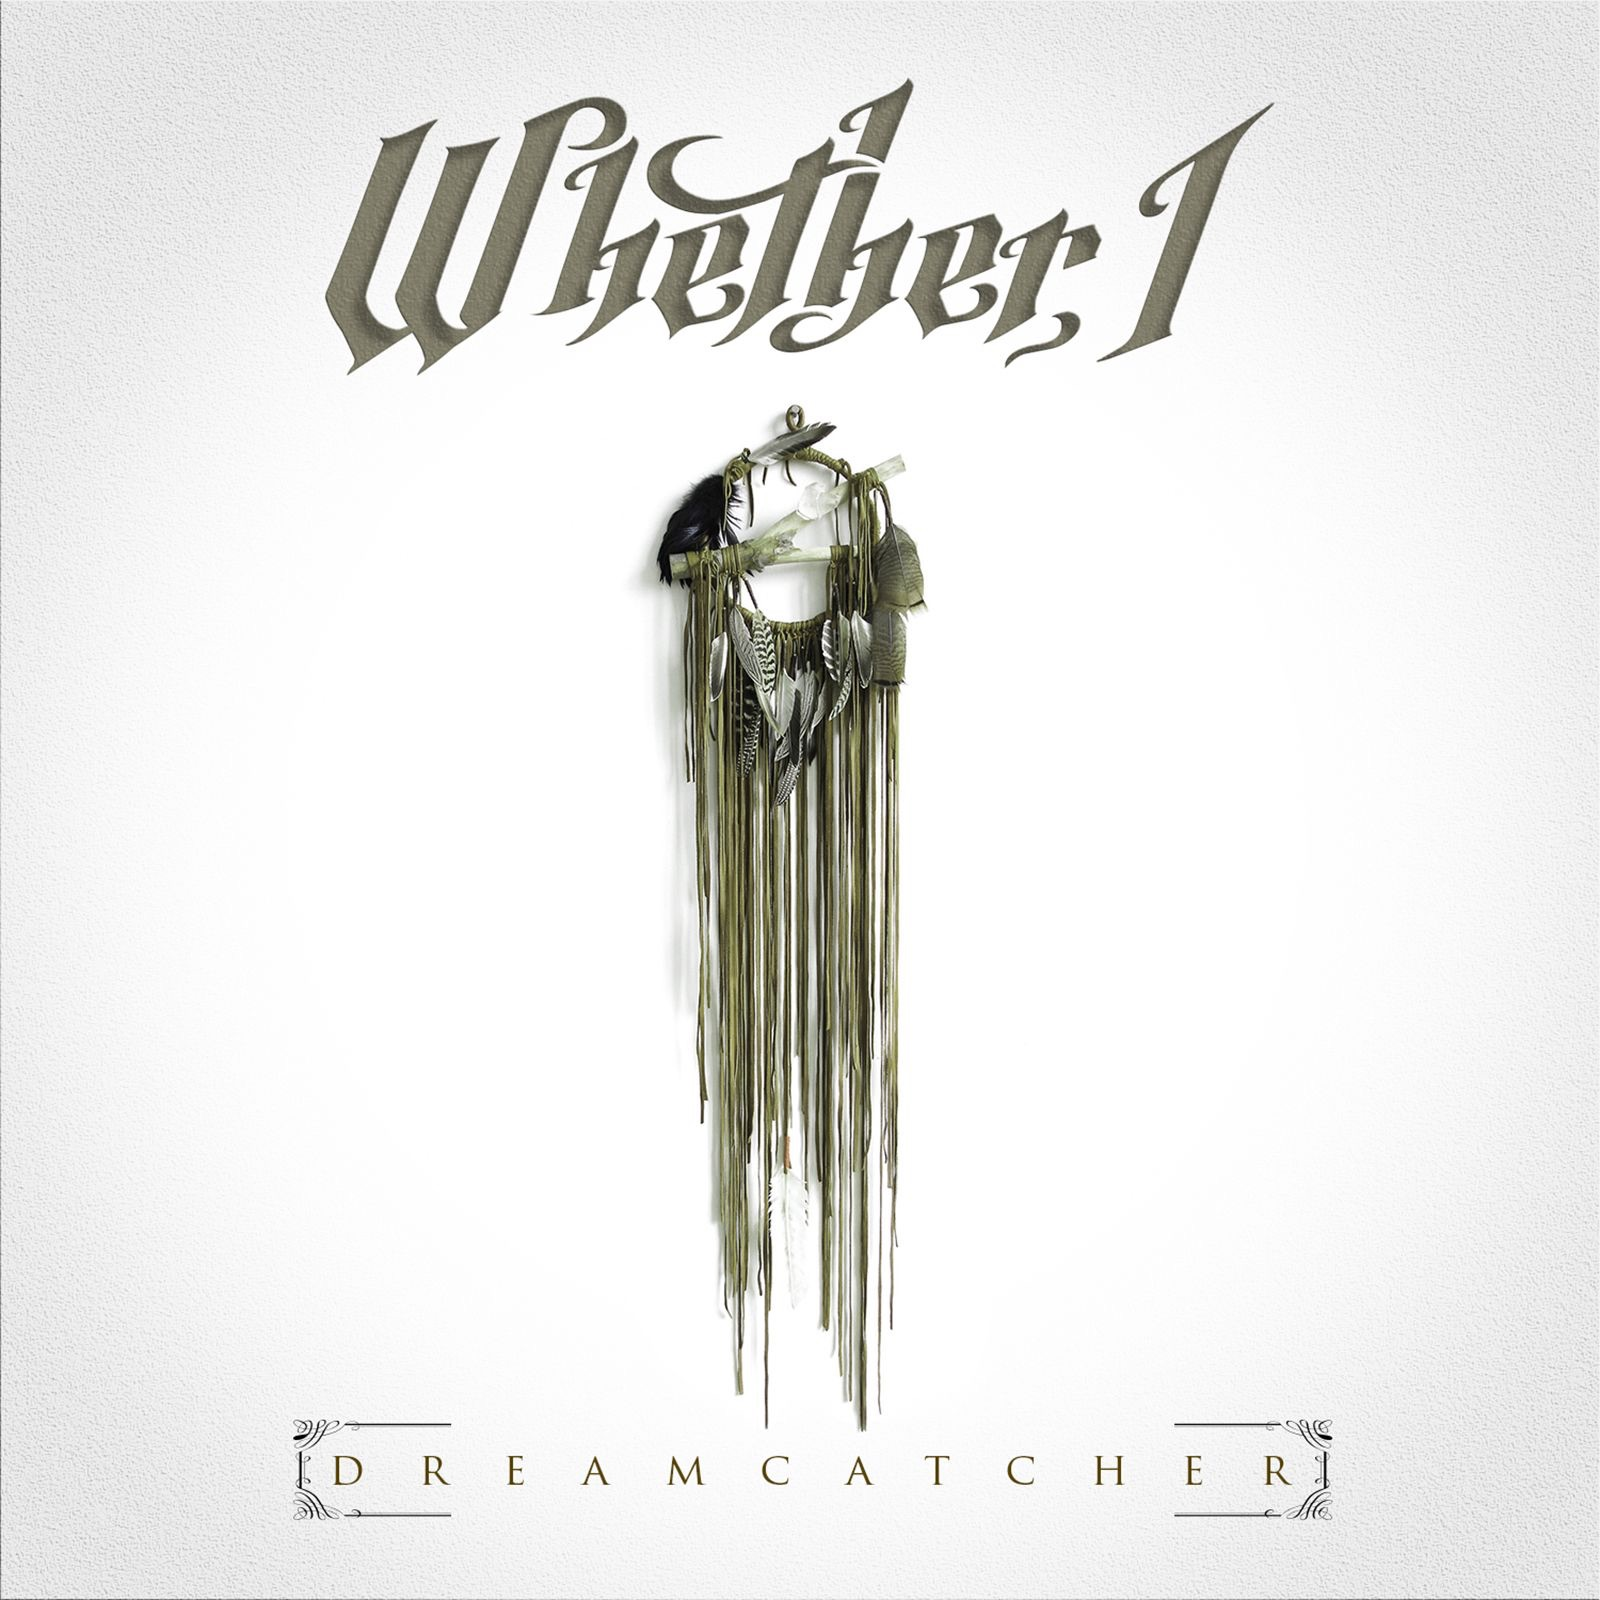 Whether, I - Dreamcatcher [EP] (2014)